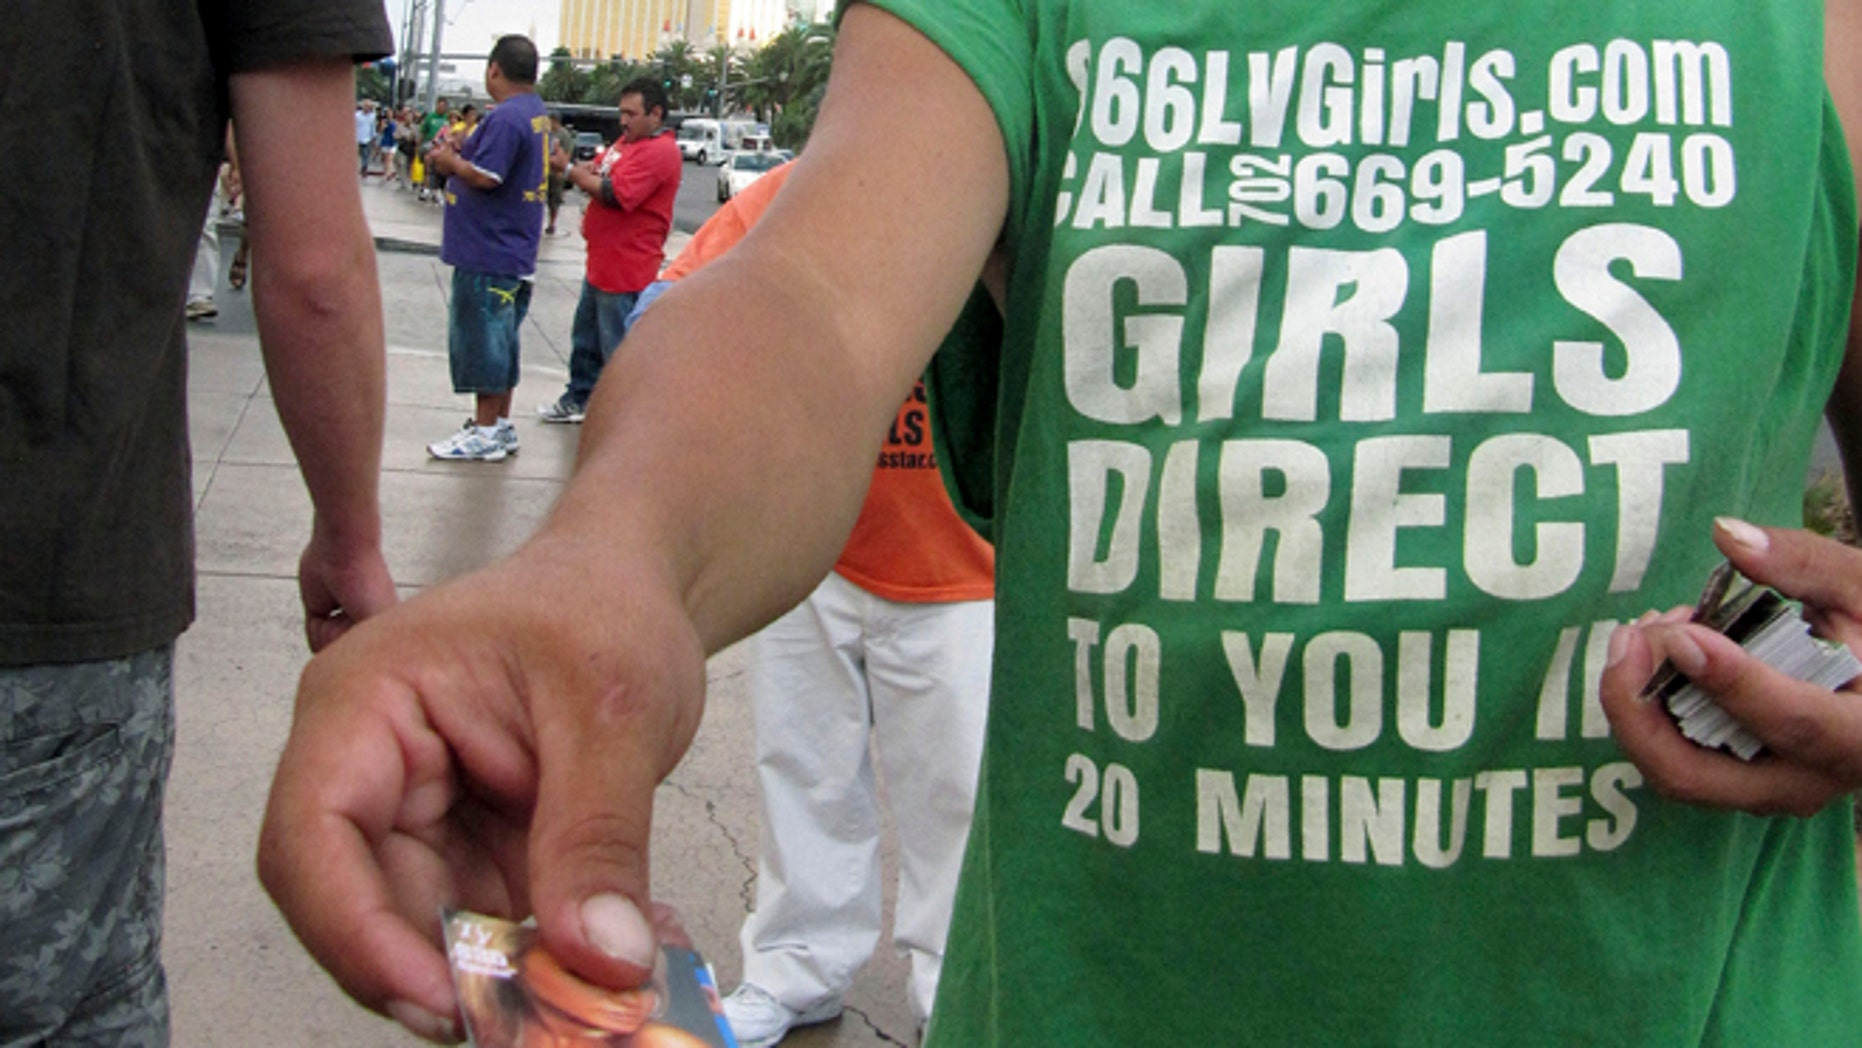 Aug. 29, 2012: An unidentified man on a Las Vegas Strip sidewalk hands out cards advertising exotic dancers.